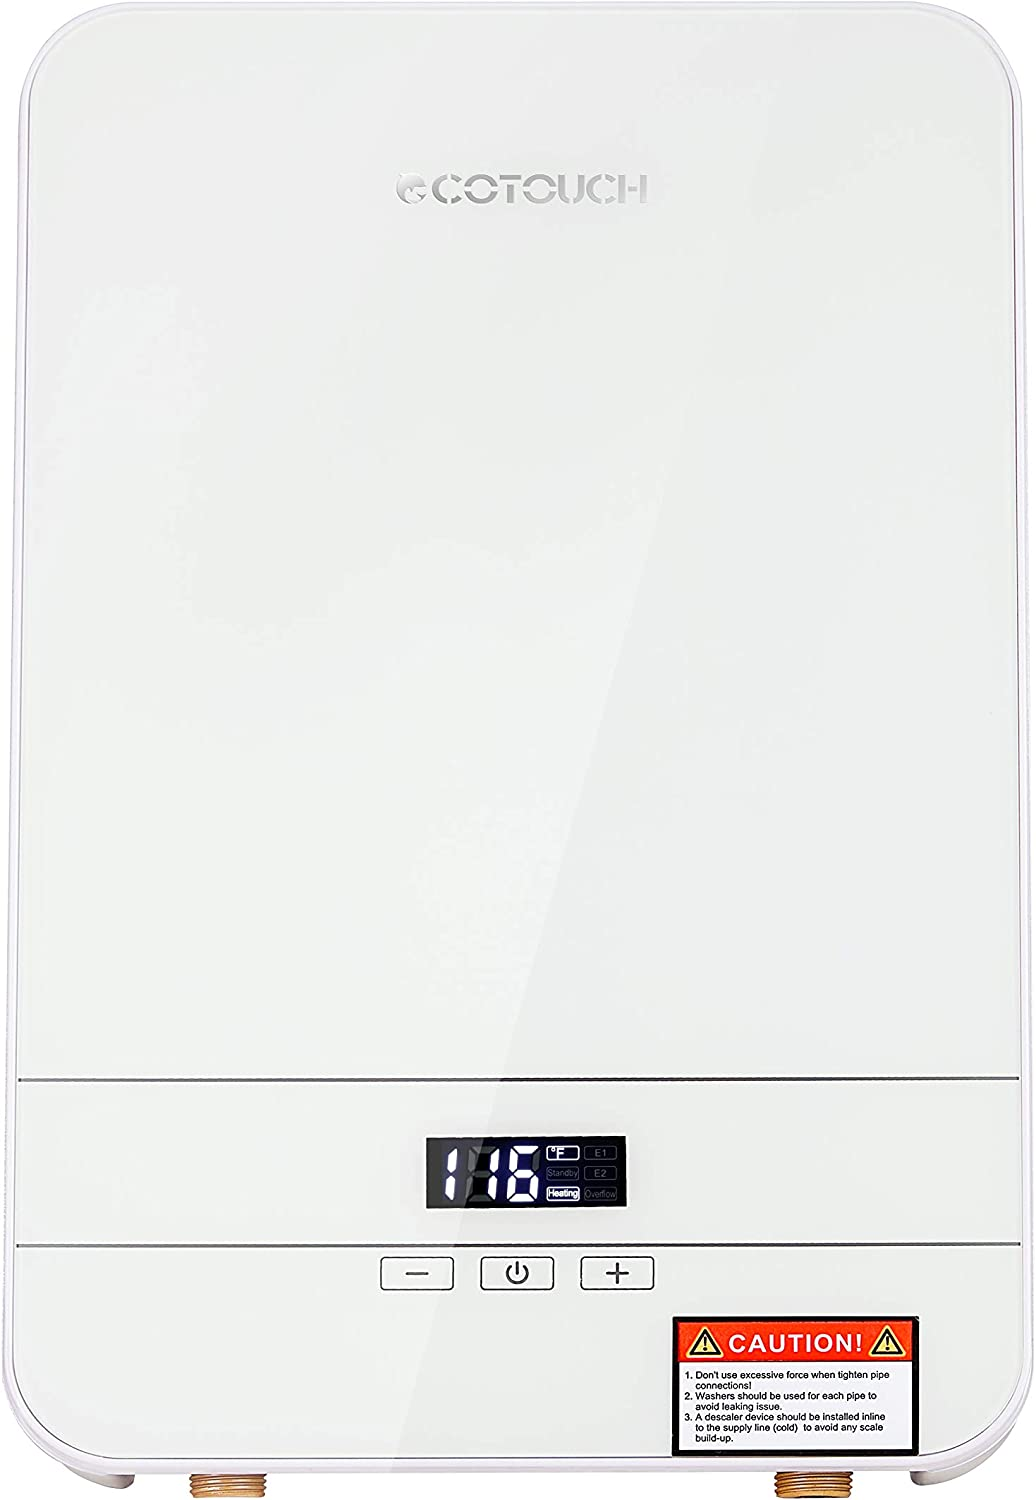 Tankless Water Heater Electric ECOTOUCH 9KW 240V on Demand Water Heater Self-Modulating Instant Hot Water Heater Point Of Use Water Heater ECO90 White